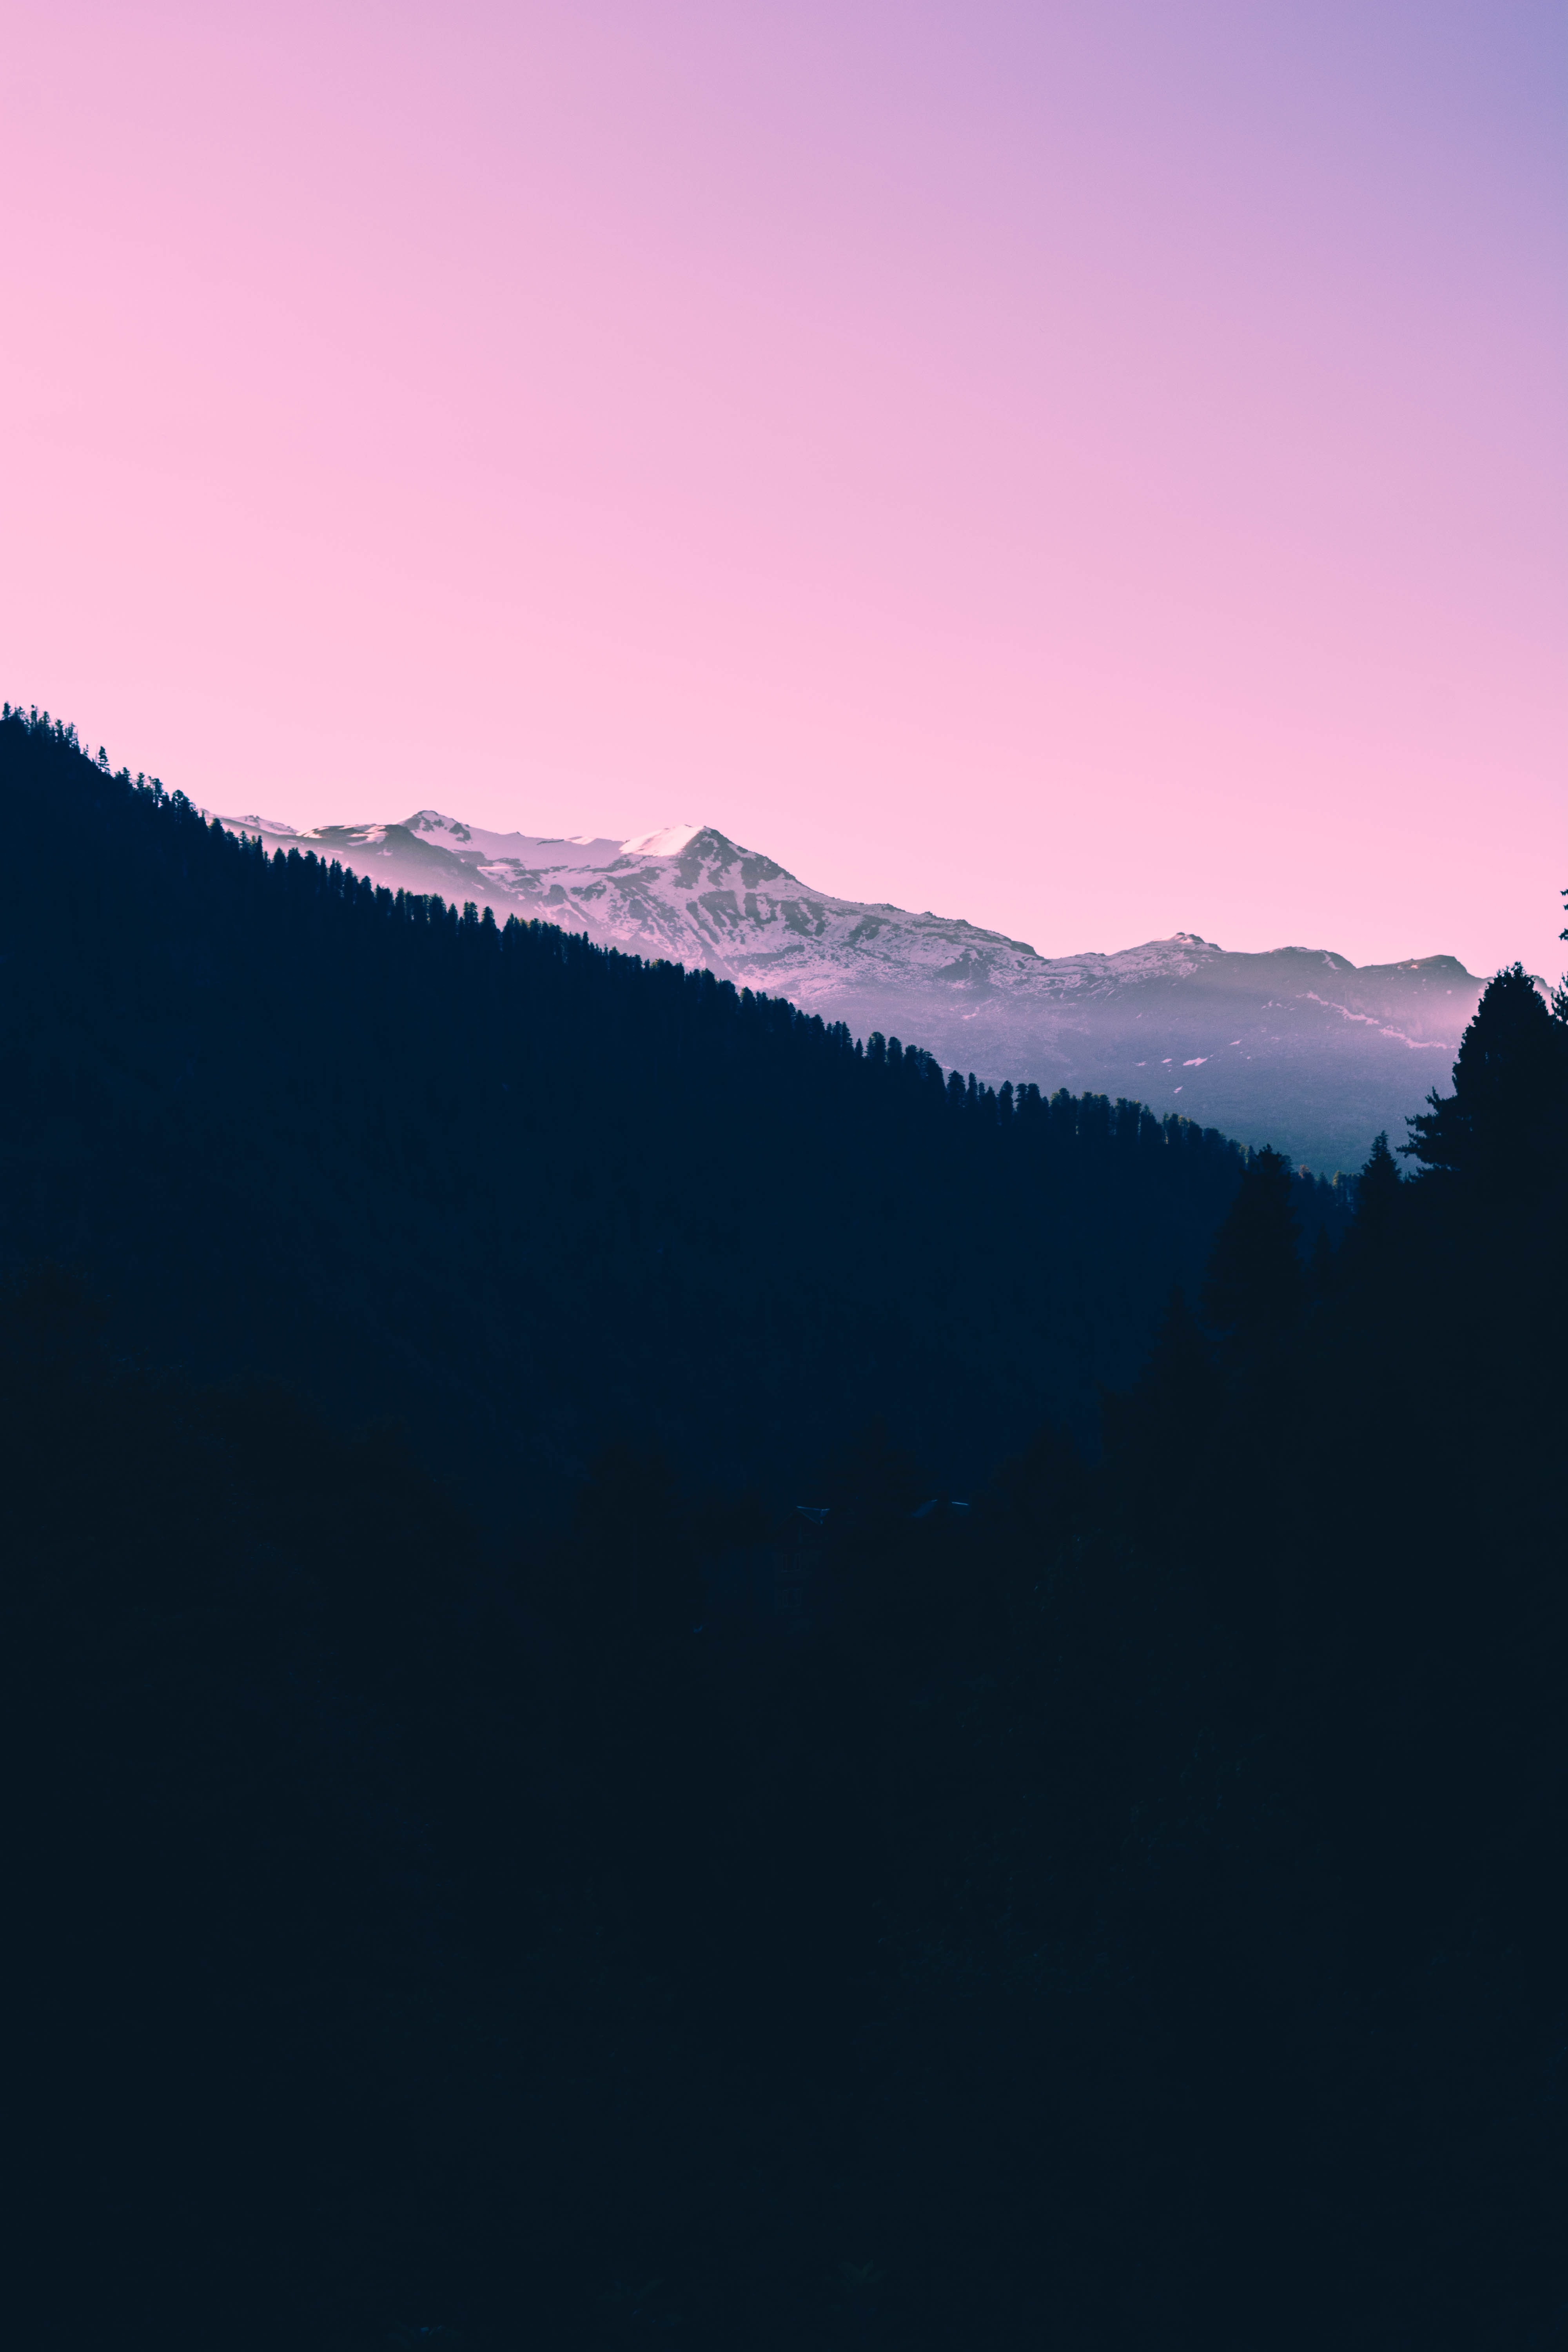 A dark sunset over snow covered mountains and a pink sky.